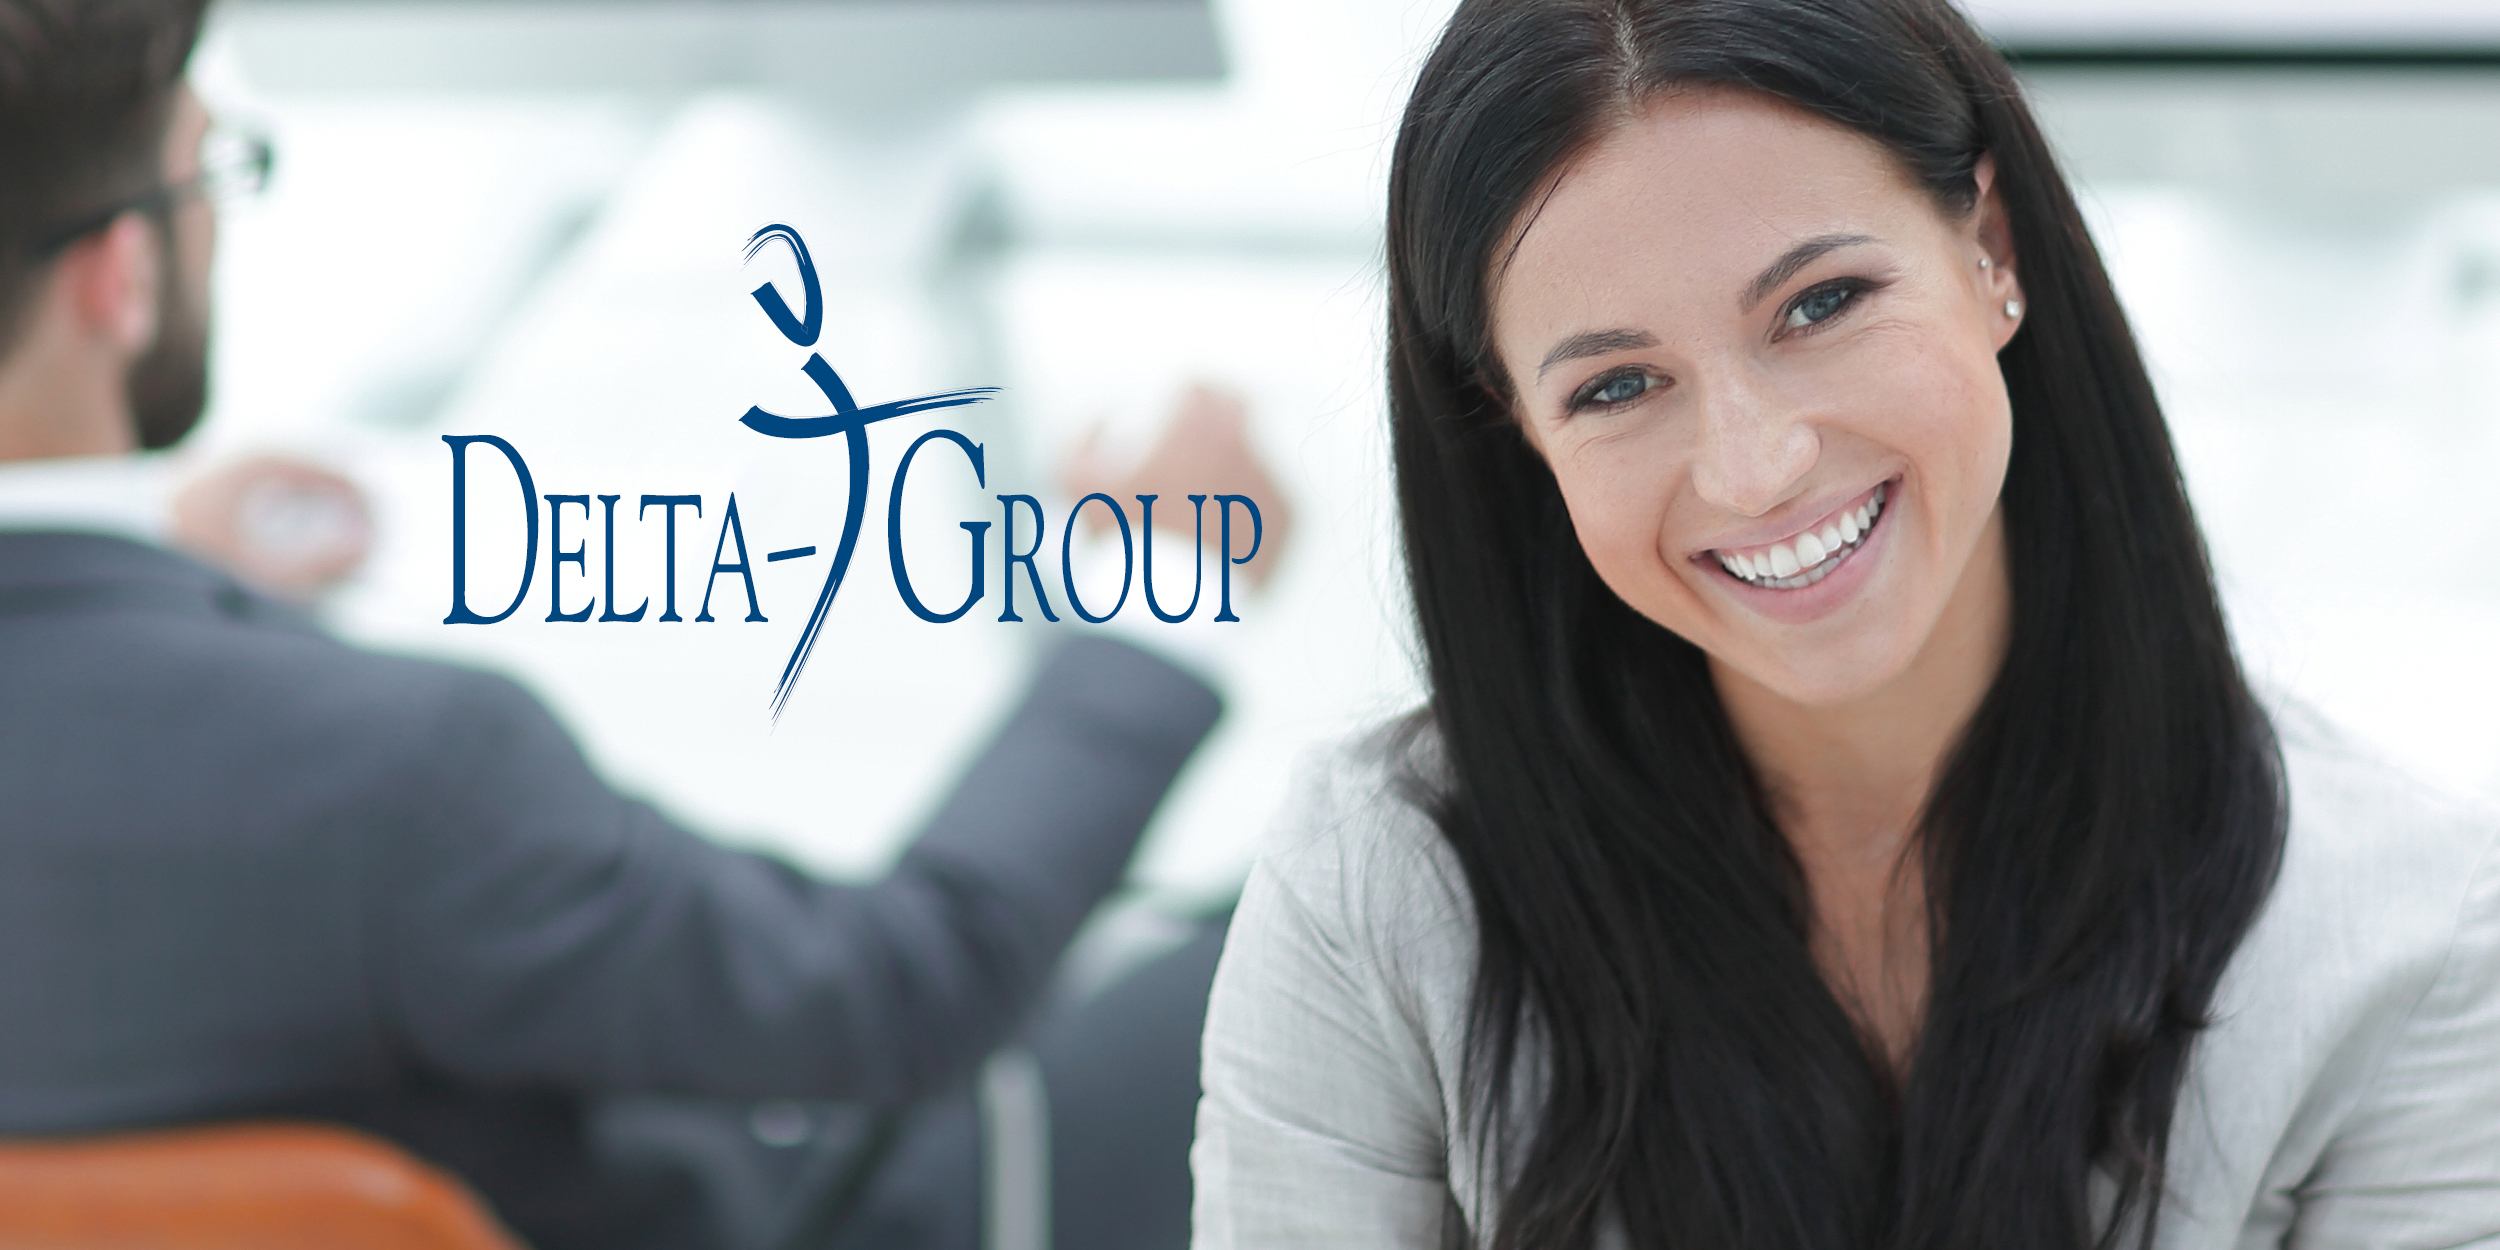 Delta-T Group - Direct Support Professional banner image